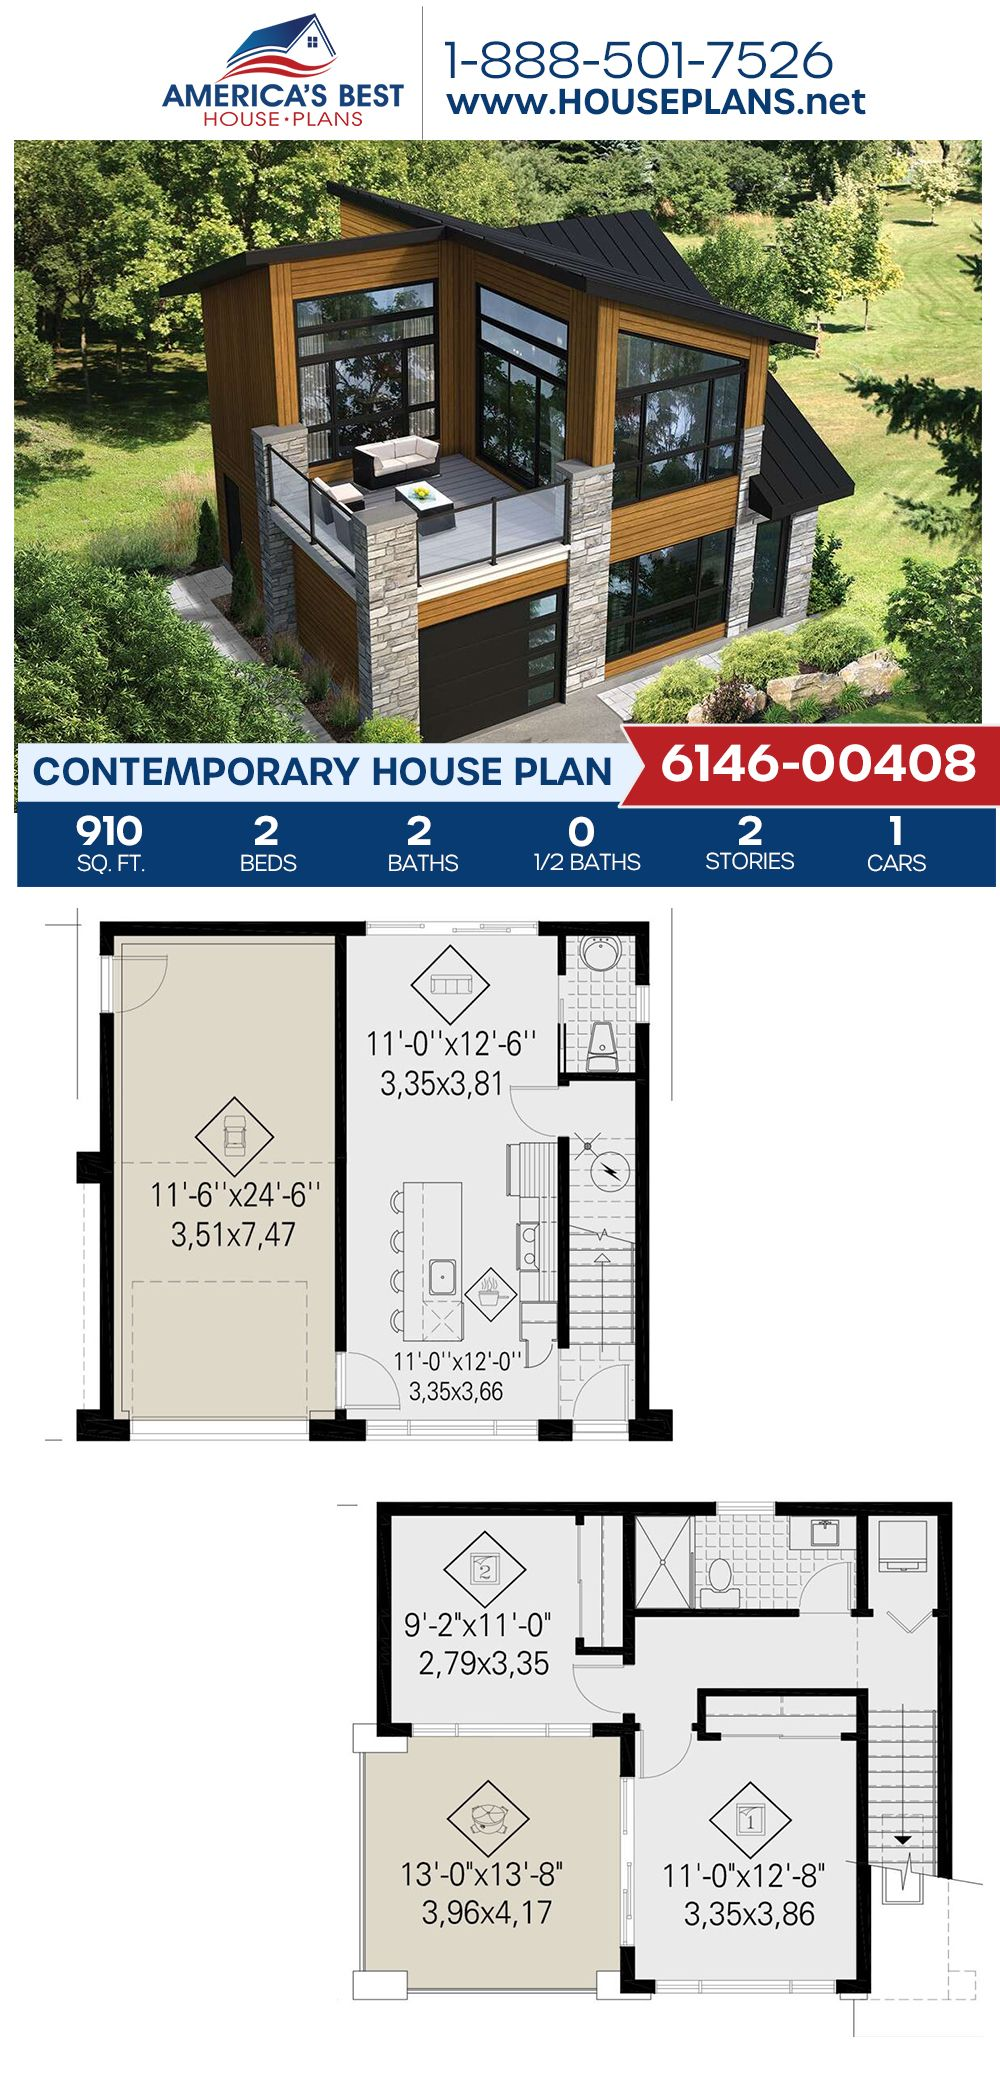 If you love the Contemporary style, get to know Plan 6146-00408! This Contemporary home design offers 910 sq. ft., 2 bedrooms, 2 bathrooms, a kitchen island, an open floor plan, and a one car garage. #contemporaryhome #contemporarystyle #openfloorplan #architecture #houseplans #housedesign #homedesign #architecturalplans #newconstruction #floorplans #dreamhome #dreamhouseplans #abhouseplans #besthouseplans #newhome #newhouse #homesweethome #buildingahome #buildahome #residentialplans